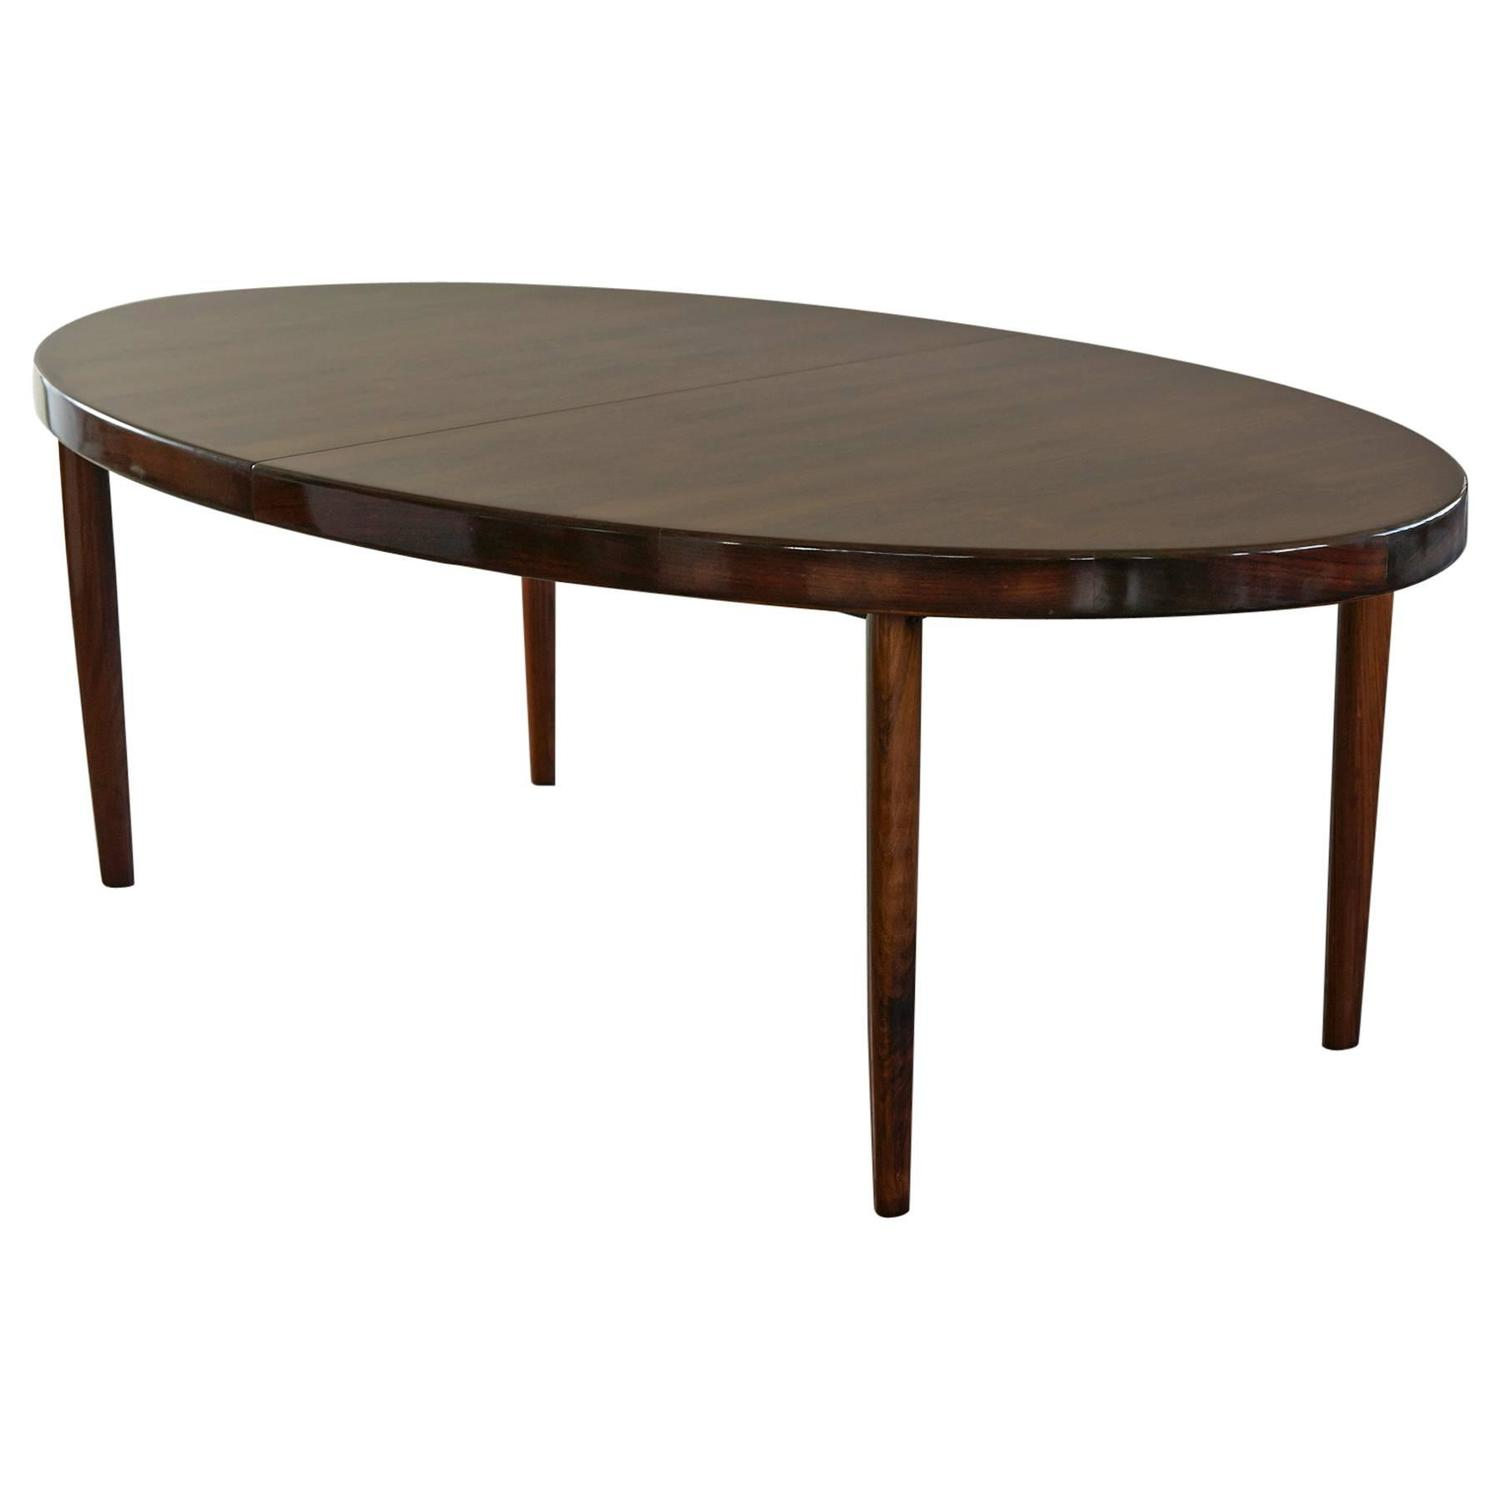 Rosewood oval extension dining table by johannes andersen for Extension dining table